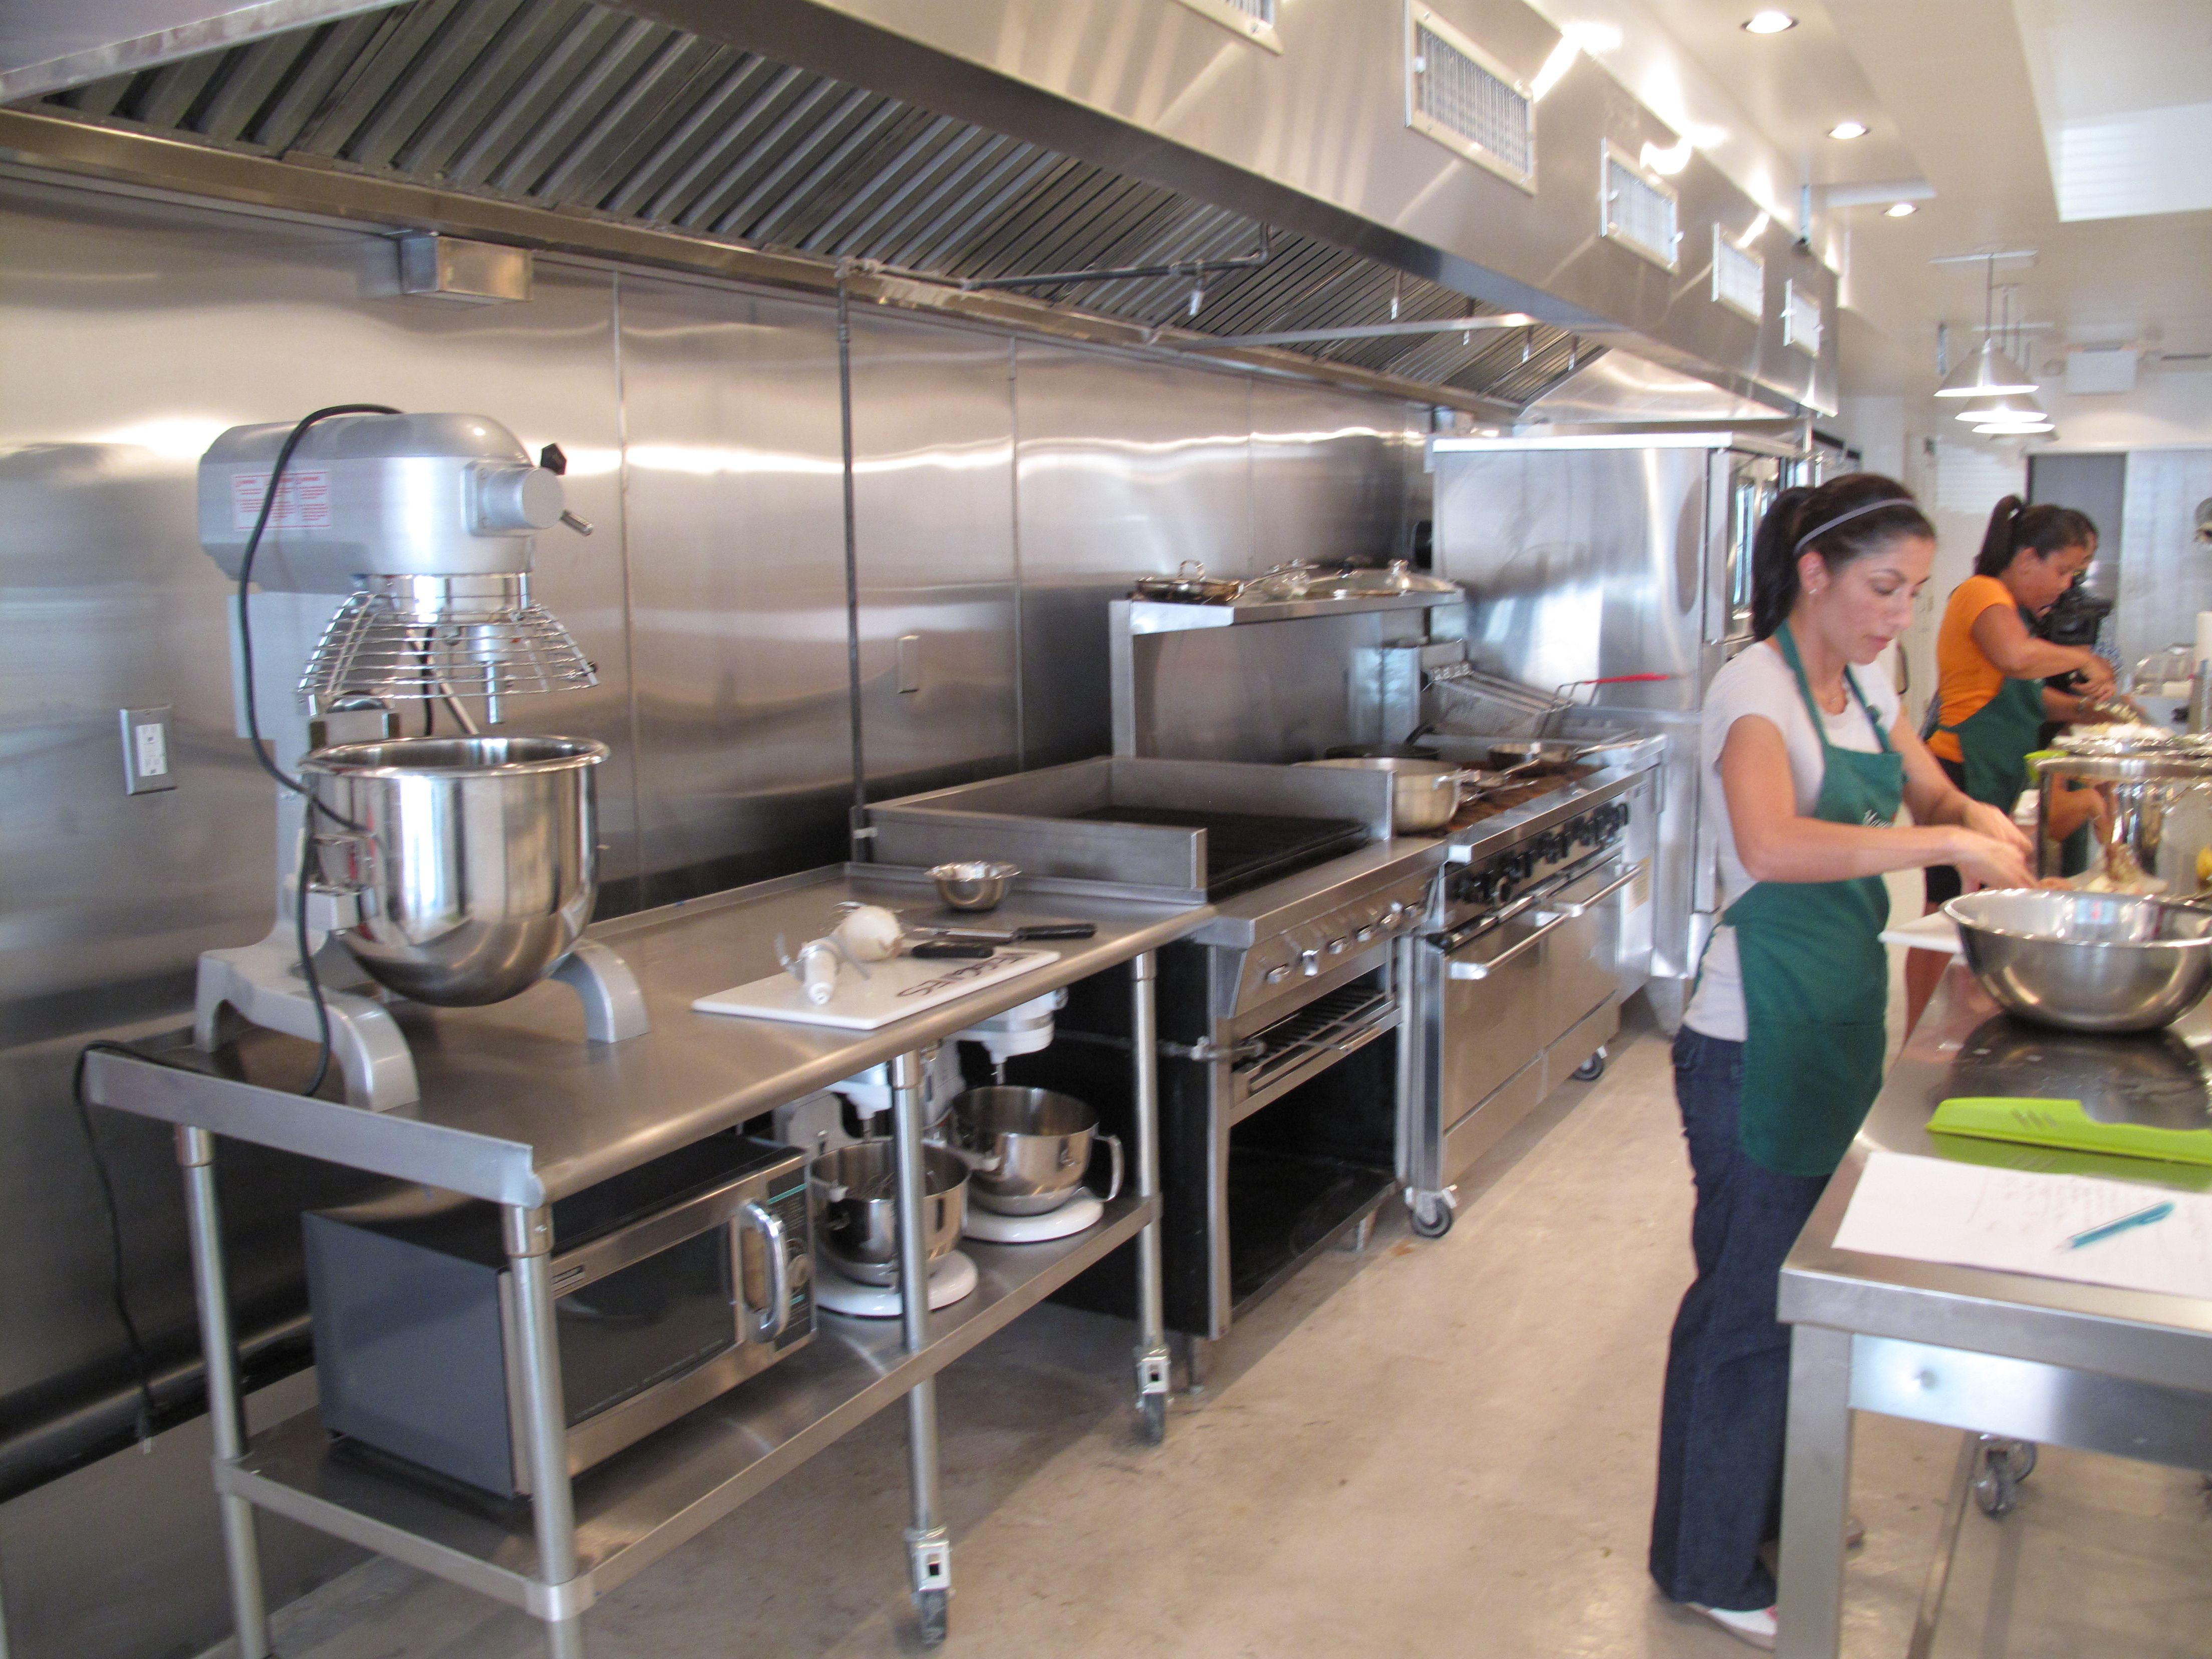 commercial kitchen design Commercial Kitchen design layout commercial kitchen design industrial and